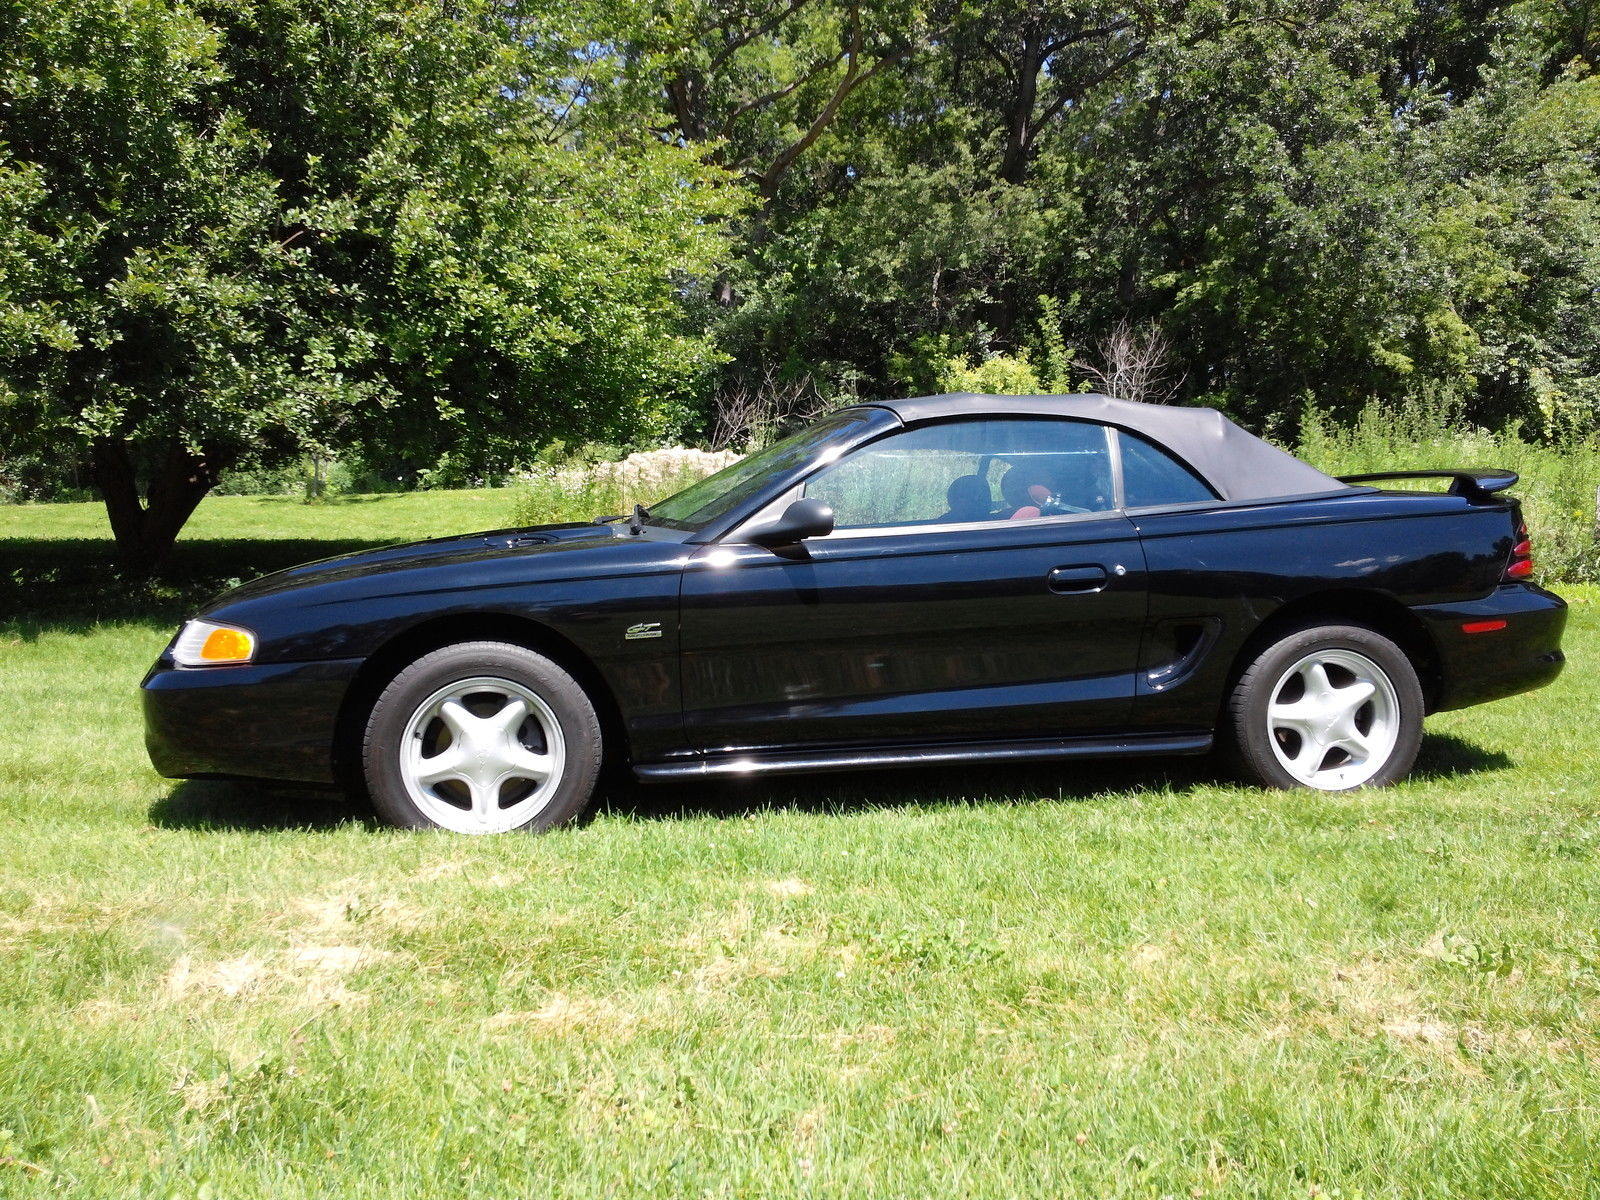 1994 ford mustang gt v8 5 0 ho 5 speed manual classic. Black Bedroom Furniture Sets. Home Design Ideas